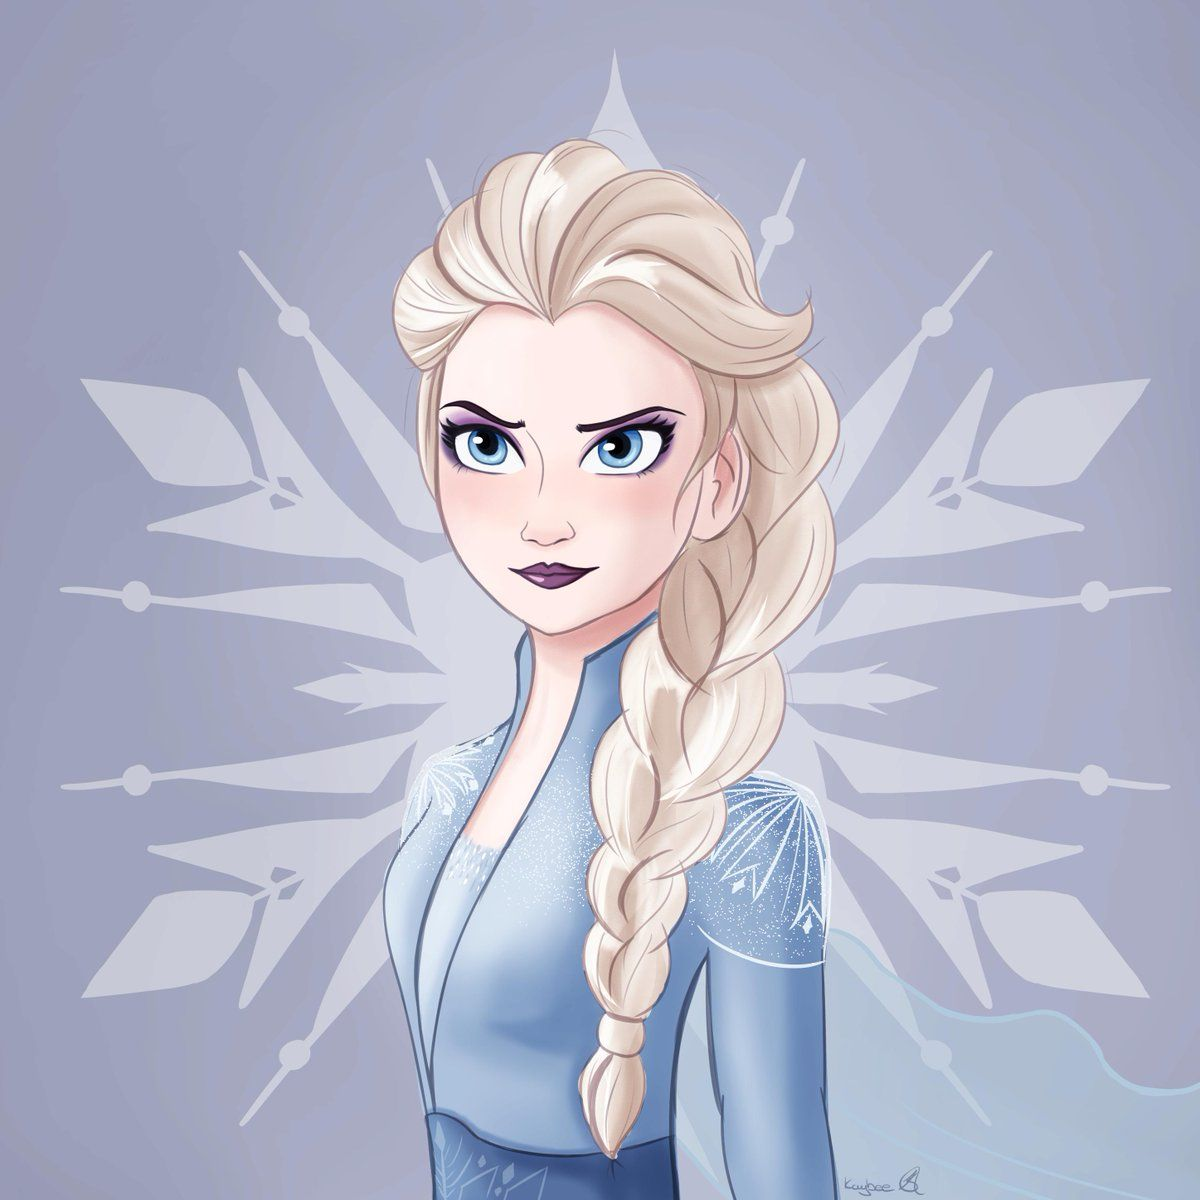 Art By Kay Bee Kaybee Worx On Twitter Frozen2 Frozen Art Frozen Fan Art Disney Princess Frozen